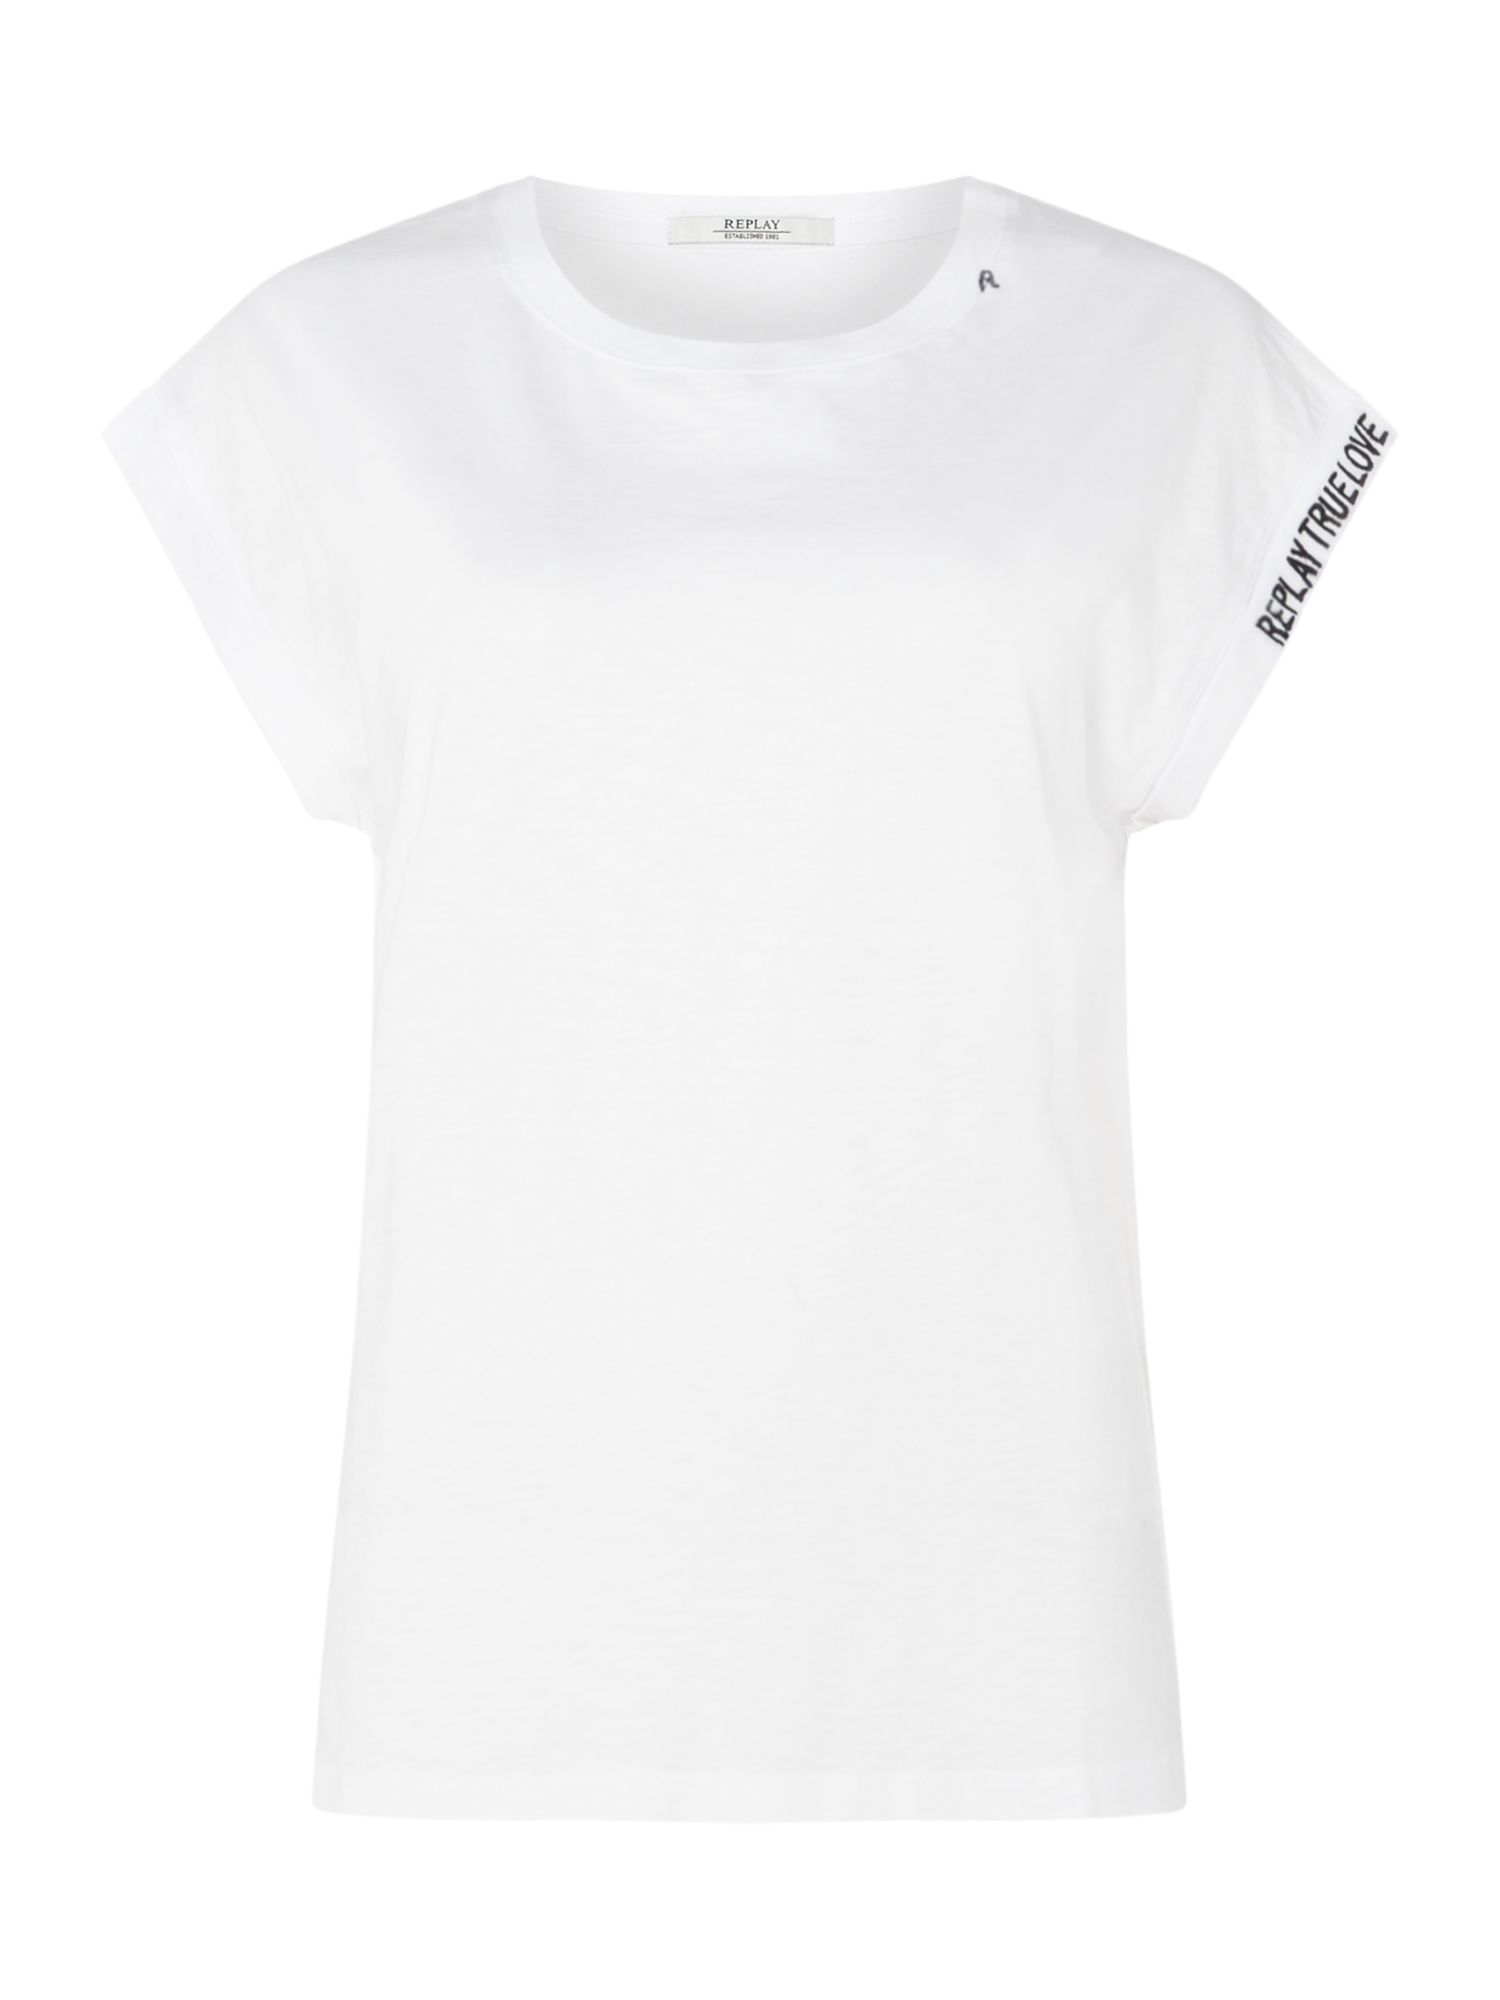 Replay Slub Jersey T-Shirt With Embroidery, Optical White